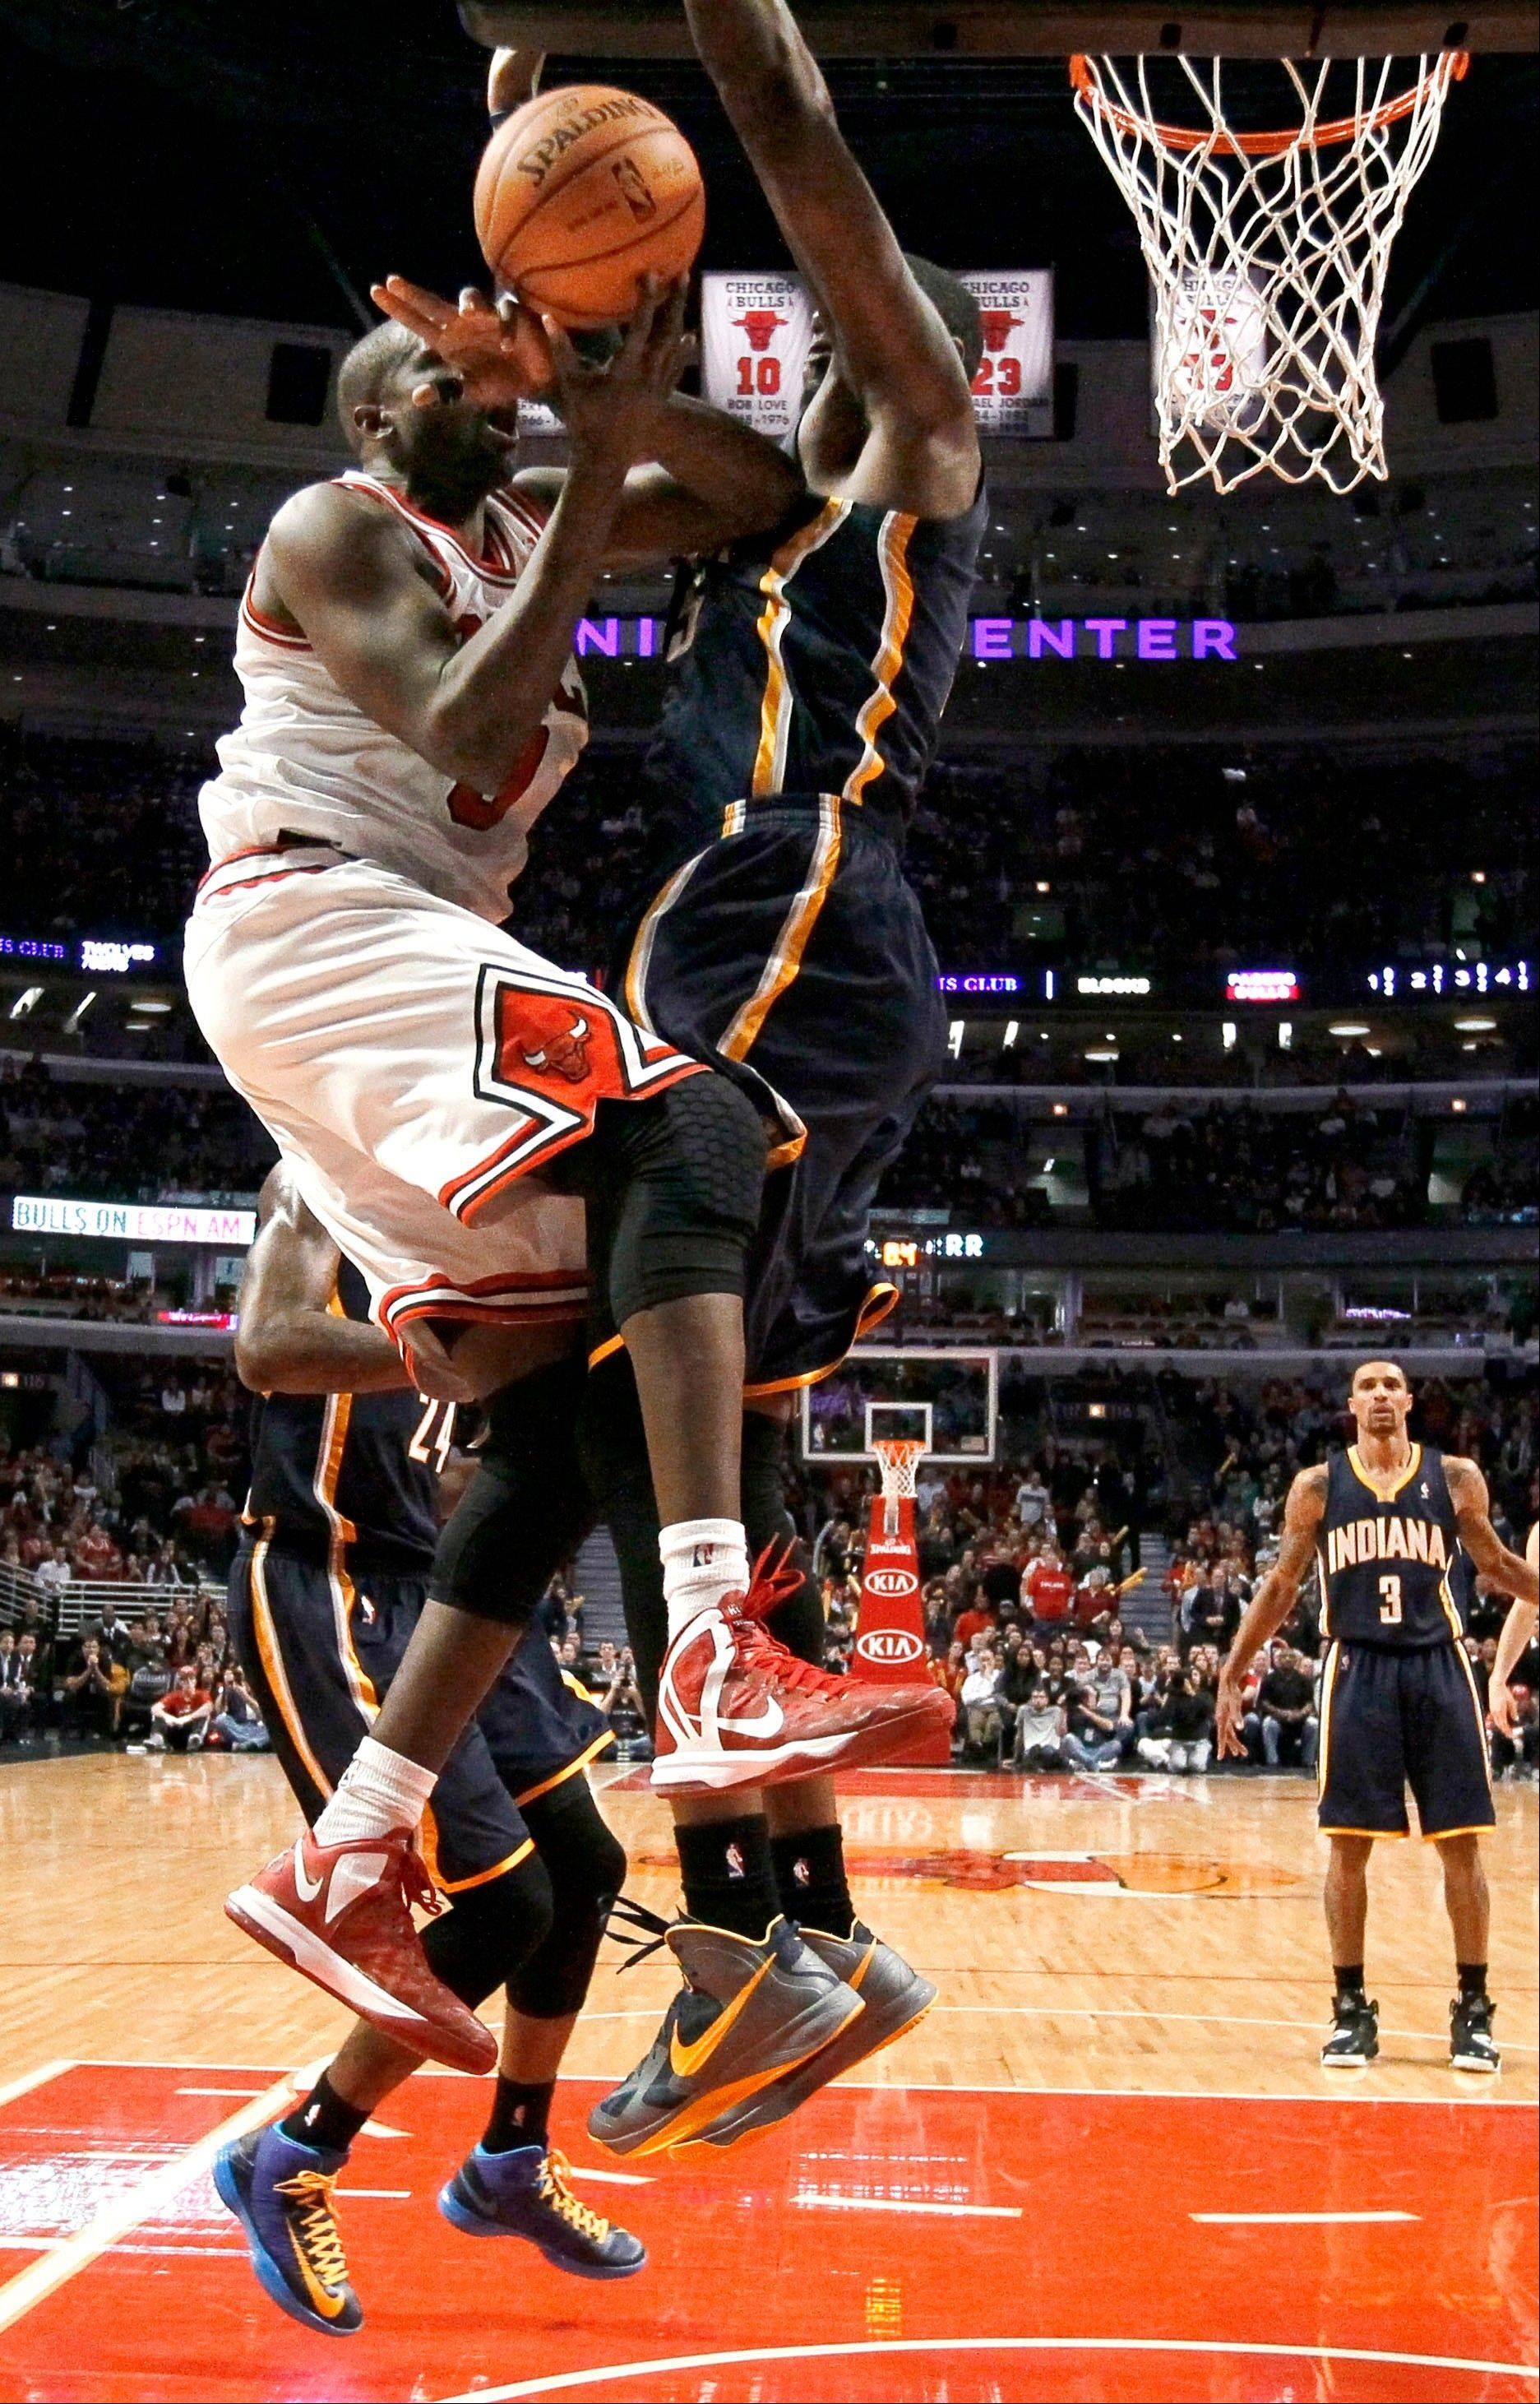 Pacers center Roy Hibbert blocks the path to the basket for the Bulls' Luol Deng, without a fouled called, during the final seconds of Tuesday night's game at the United Center.